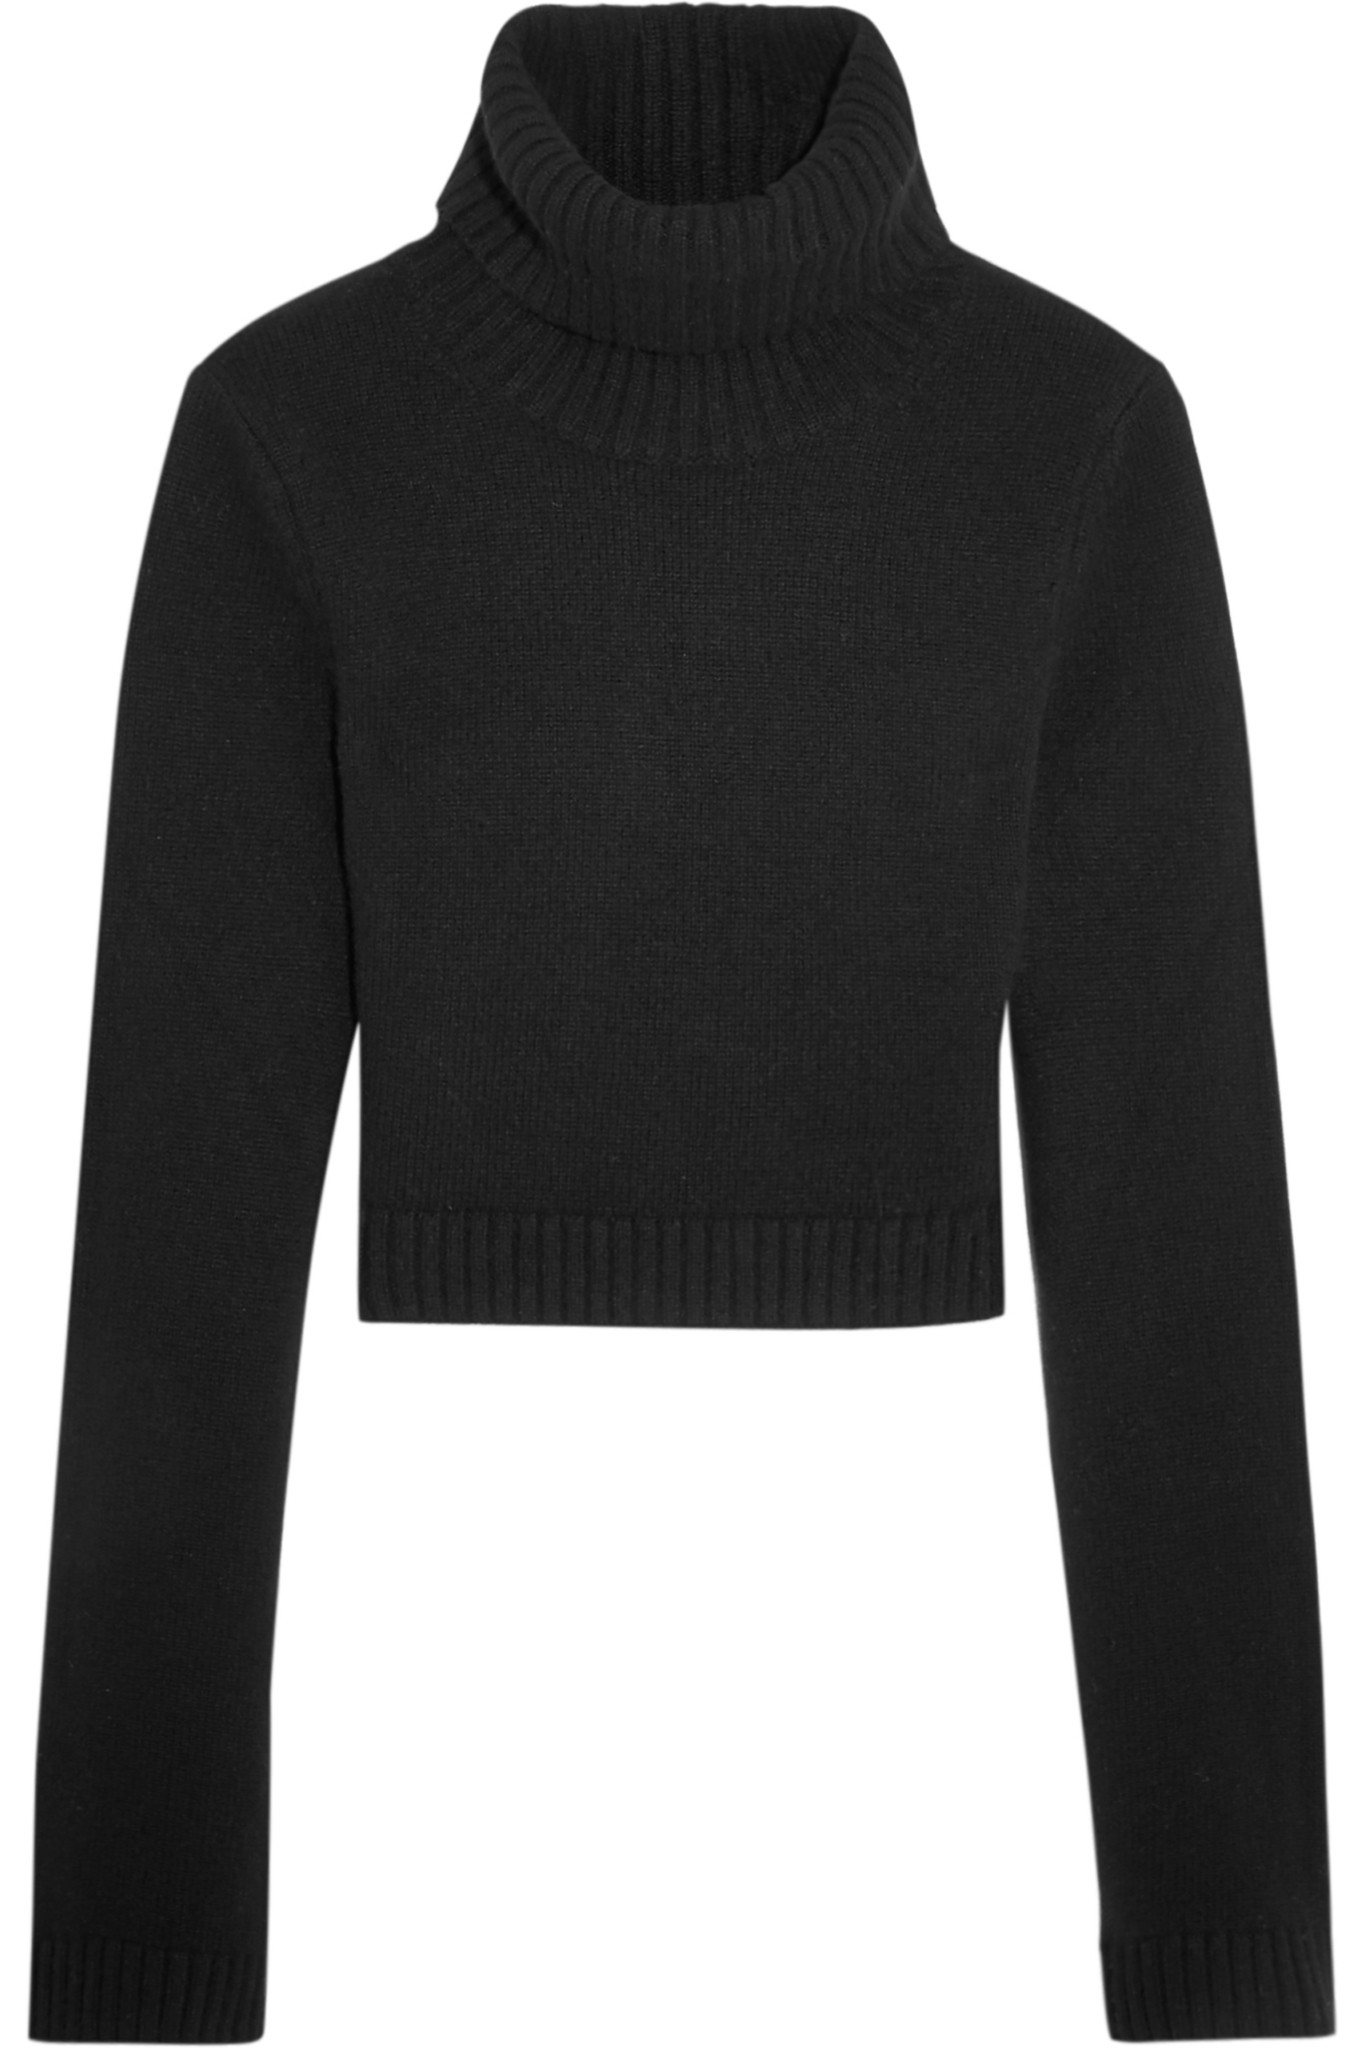 Michael kors Cropped Cashmere Turtleneck Sweater in Black | Lyst